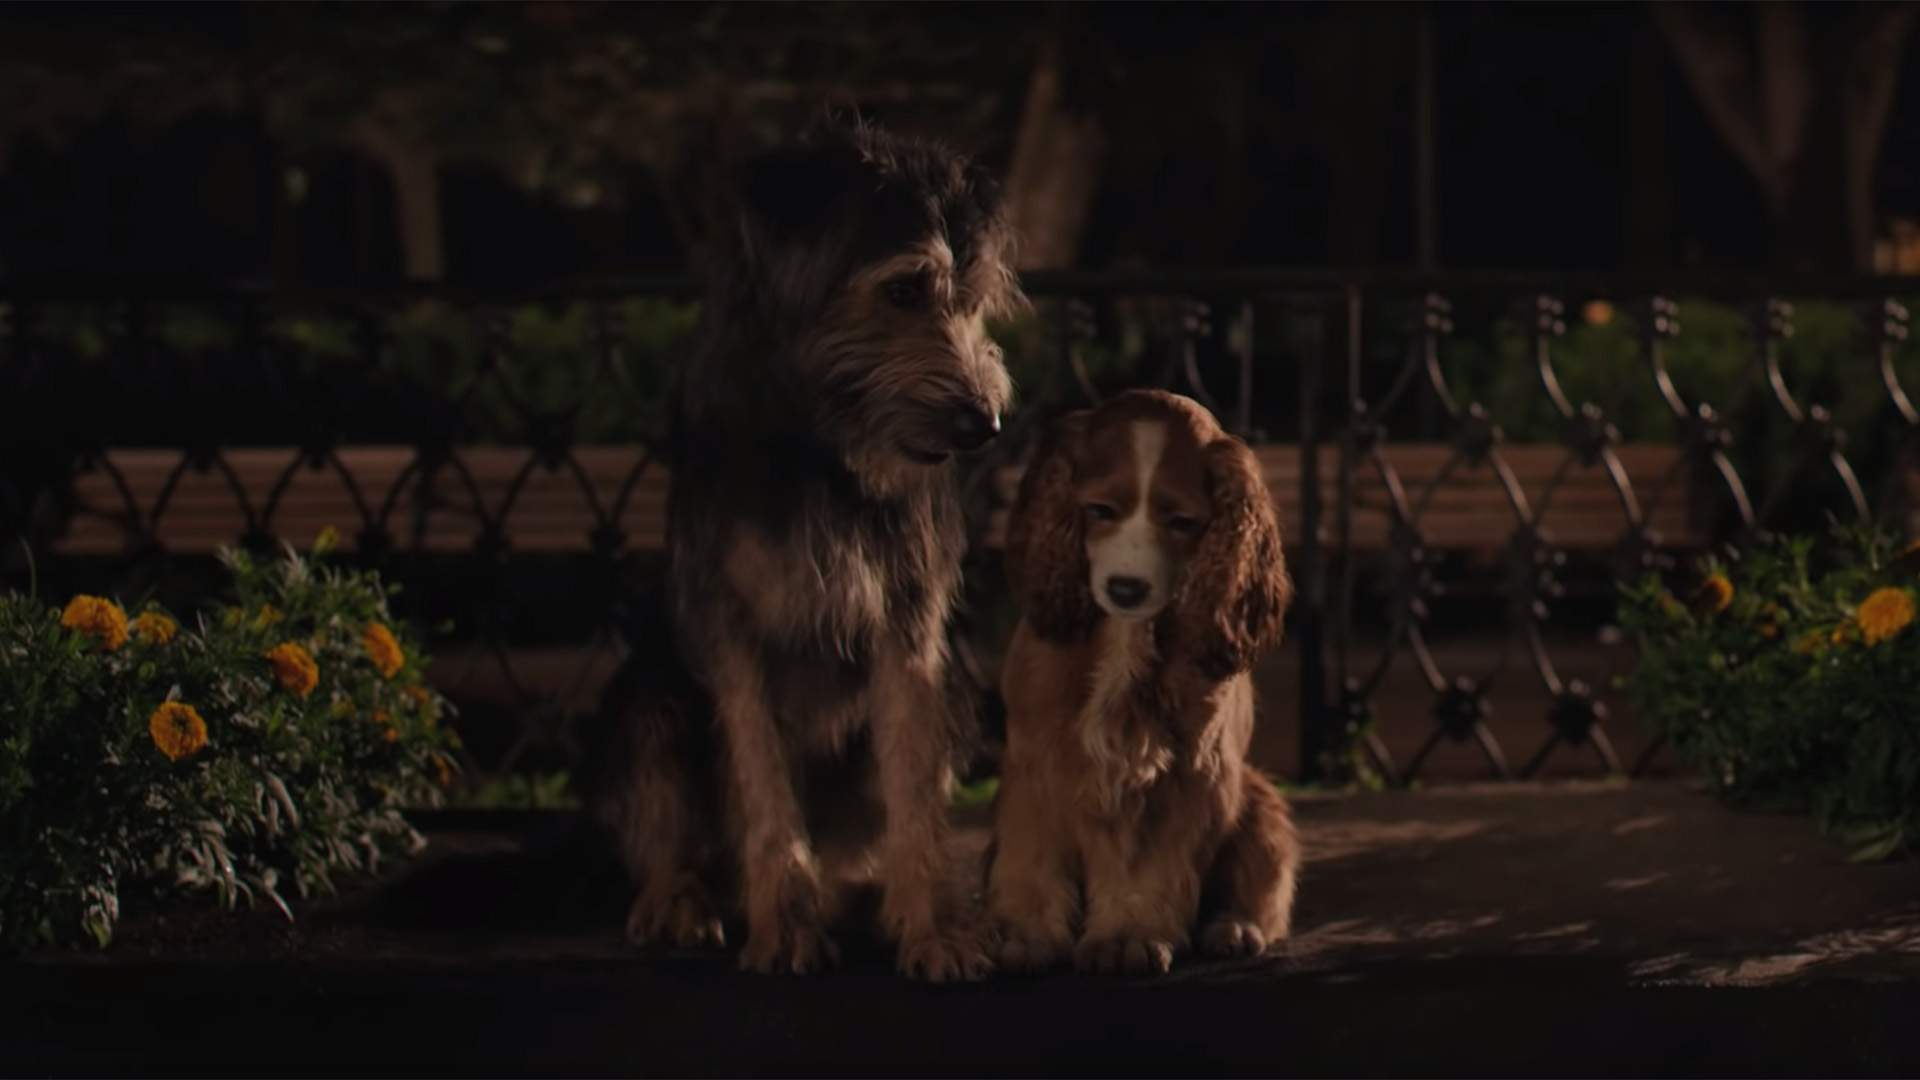 Disney's New Live-Action 'Lady and the Tramp' Trailer Is Here With Even More Adorable Dogs